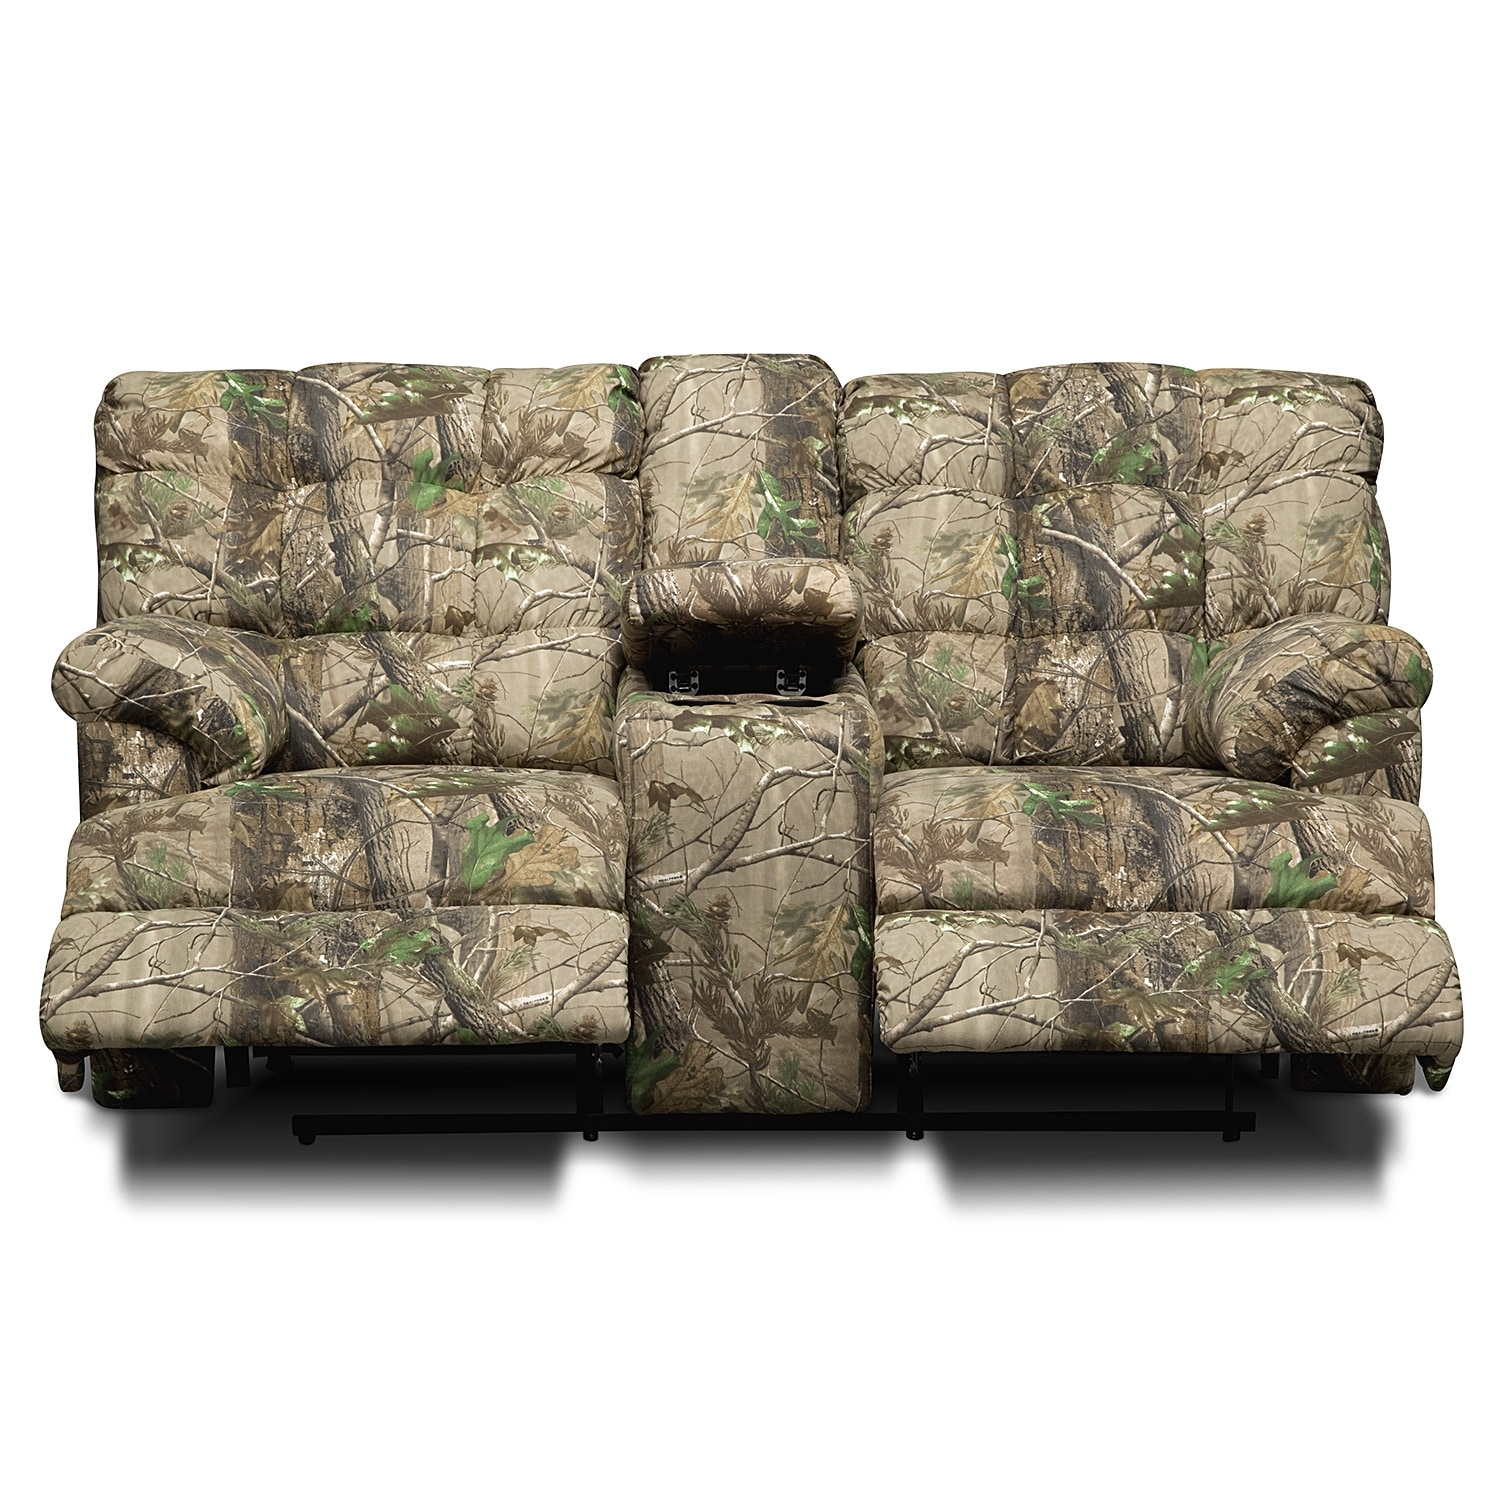 Jasper Bay Upholstery Dual Reclining Loveseat Value City Furniture